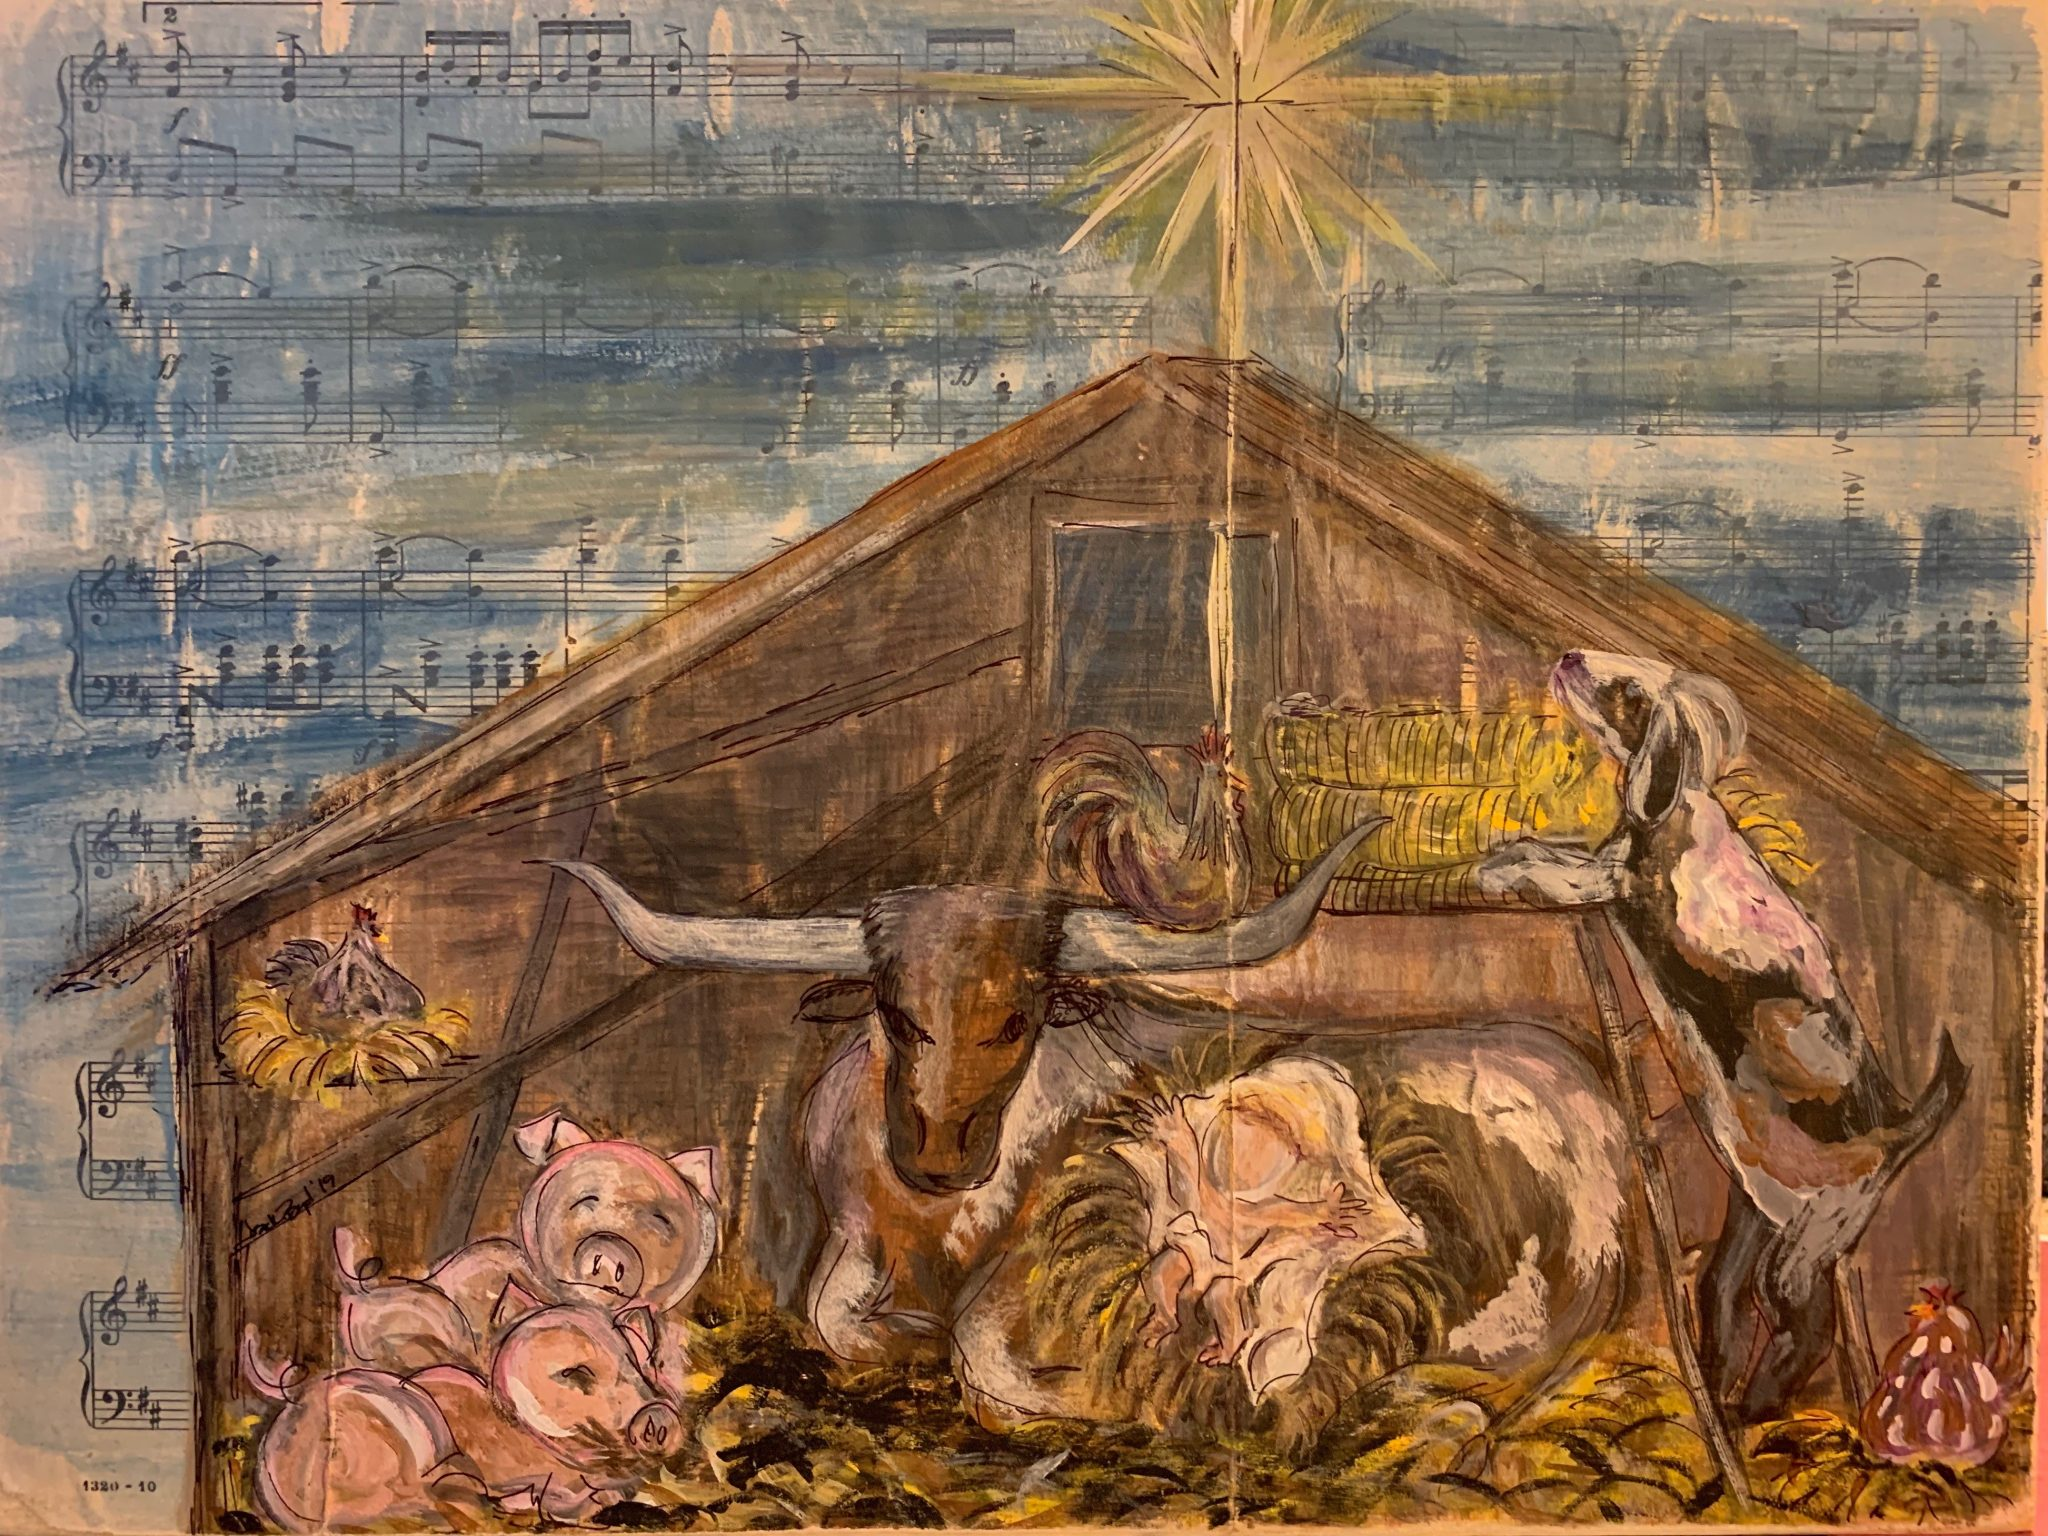 Nativity Scene Painted on Sheet Music